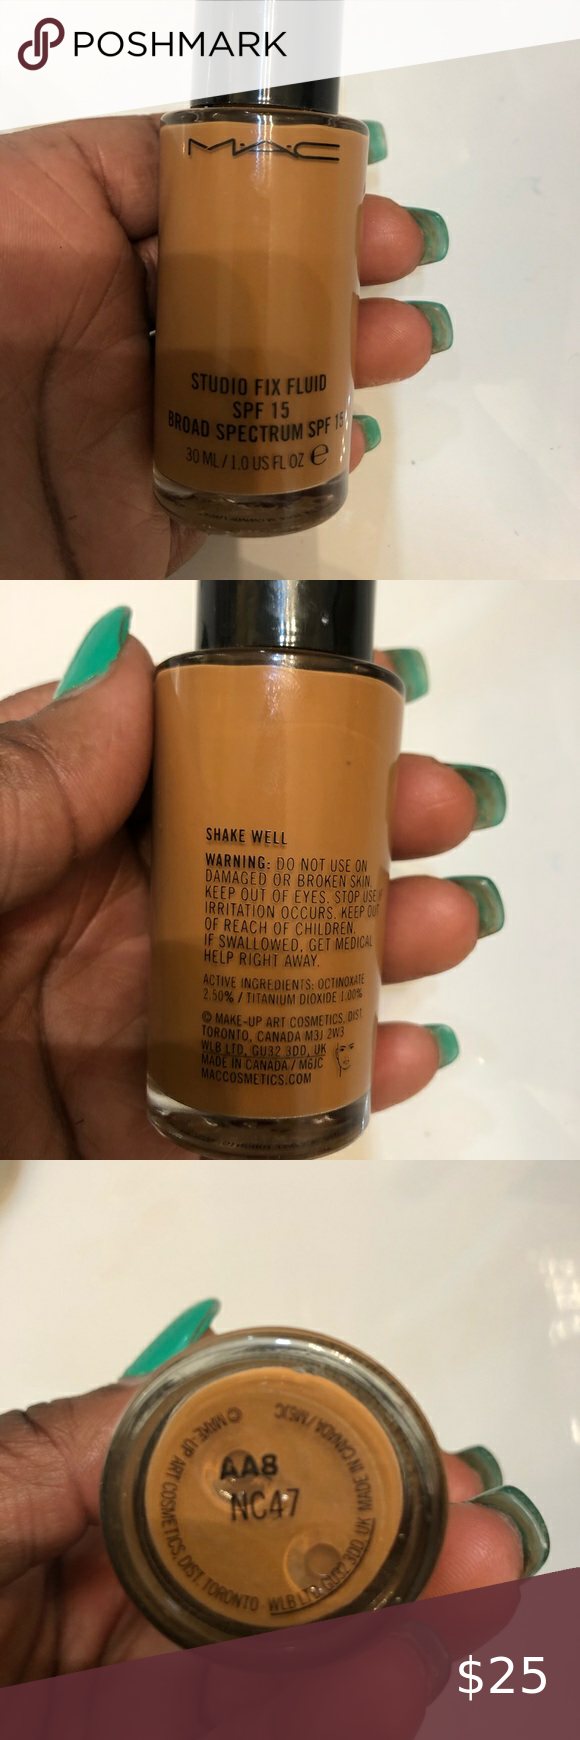 Mac NC47 foundation in 2020 Spf foundation, Makeup